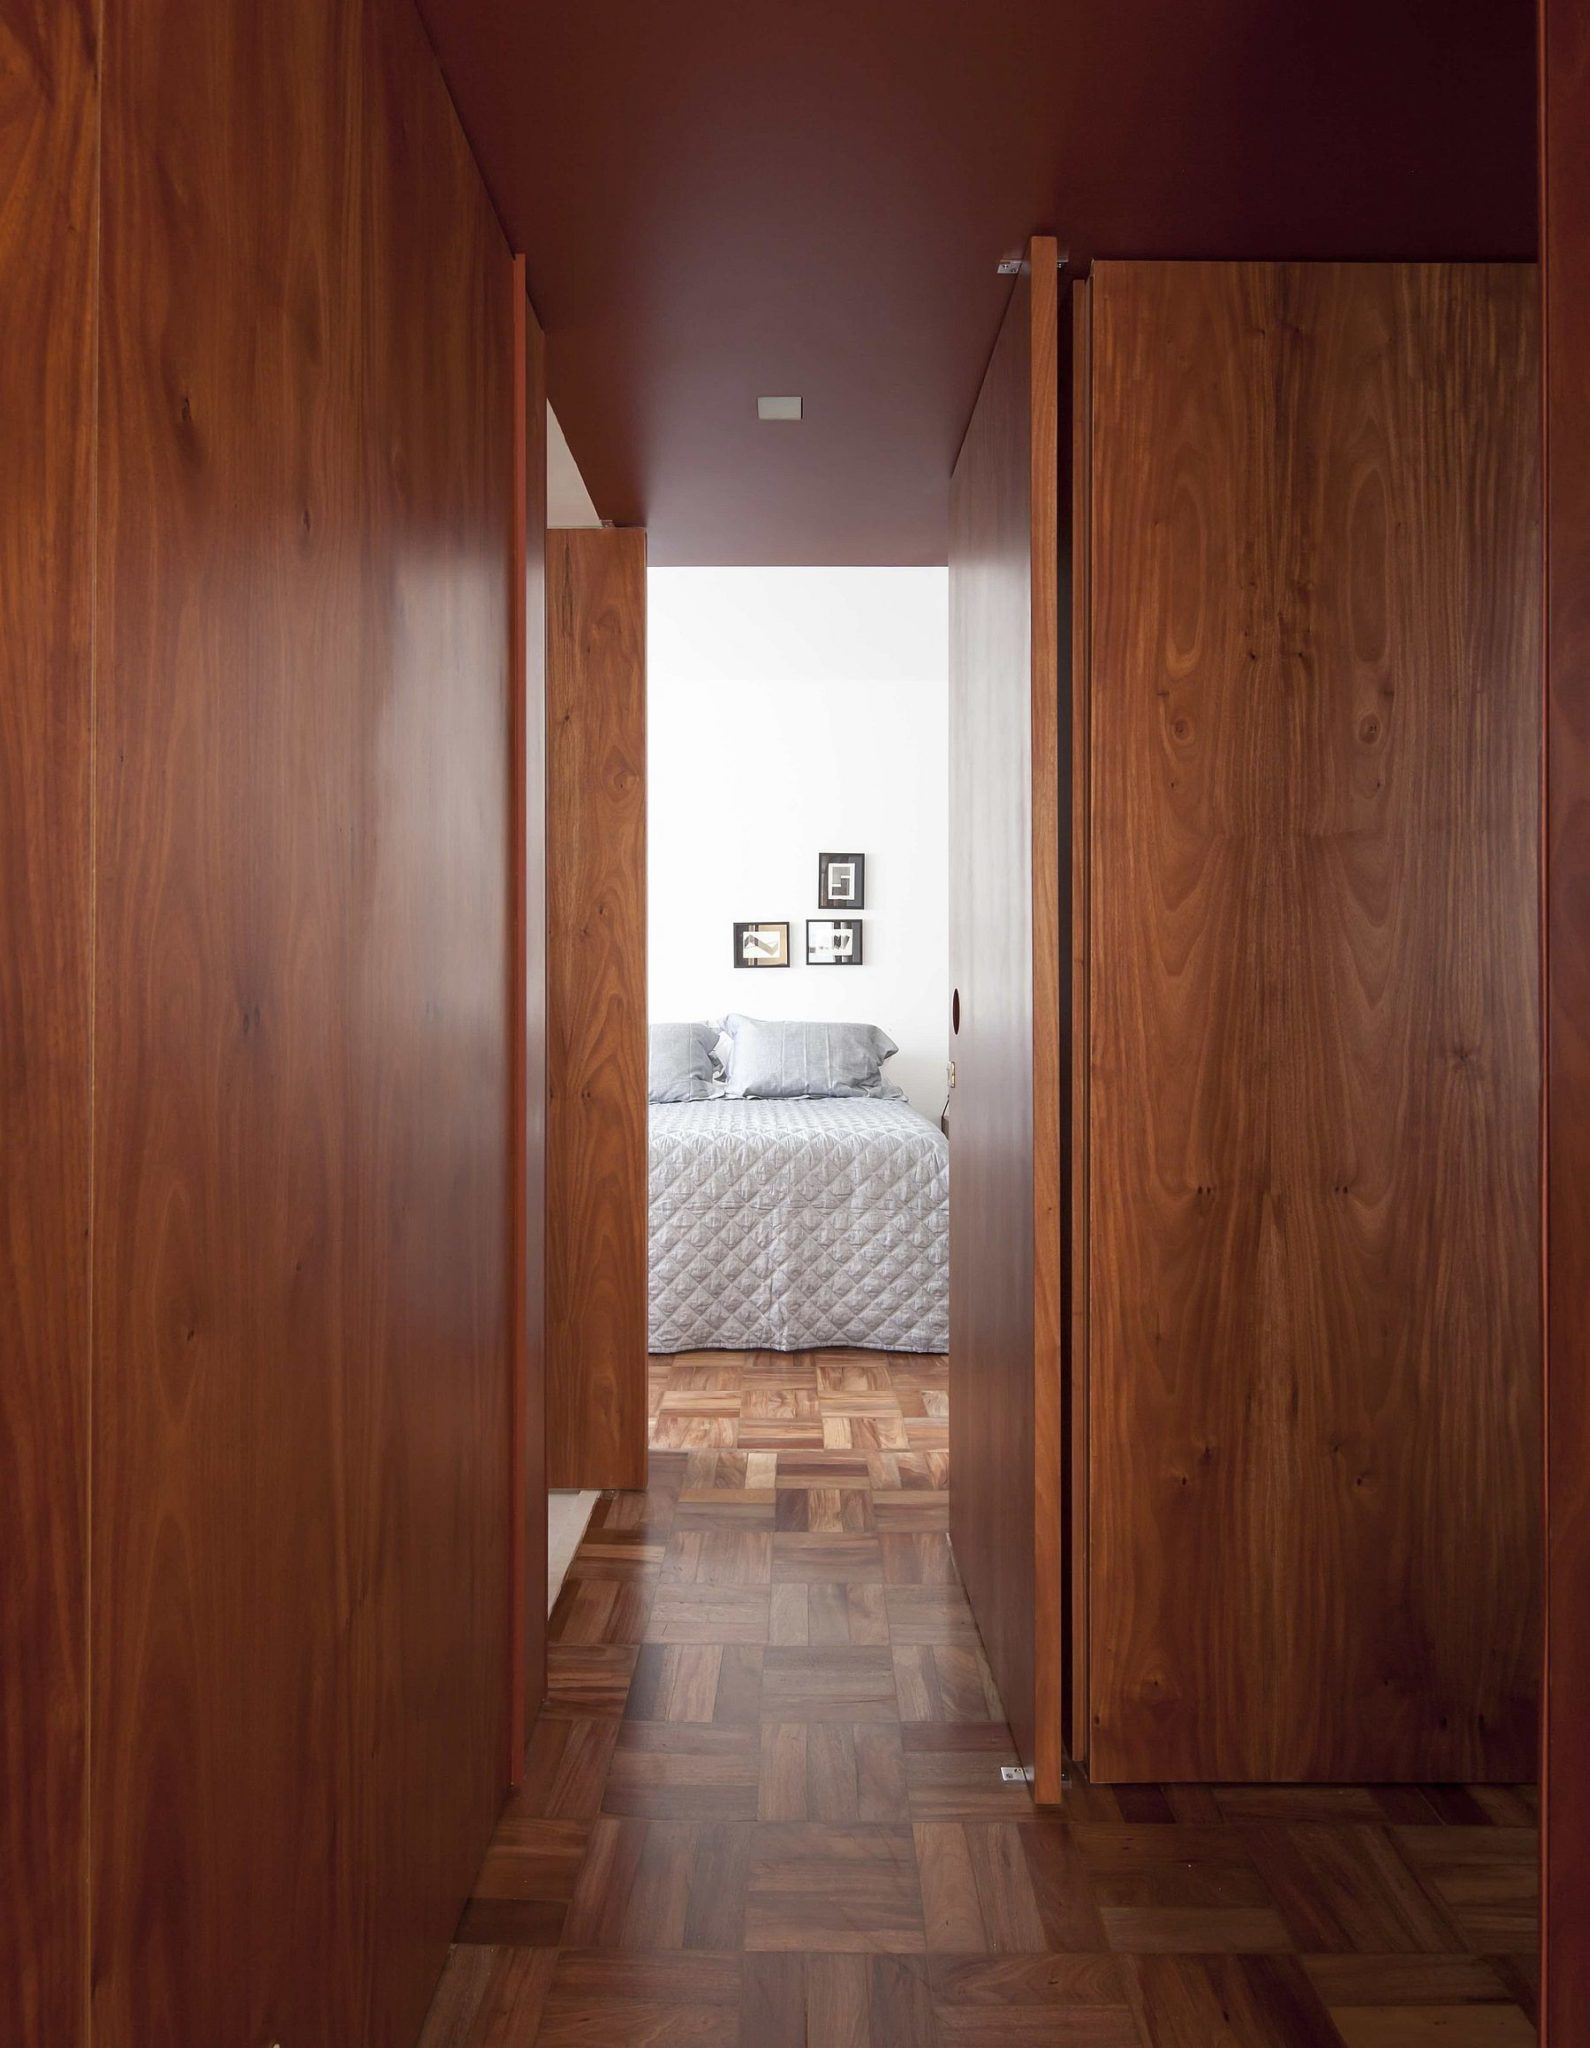 Wooden panels and unique floor give the apartment, cozy, bright appeal